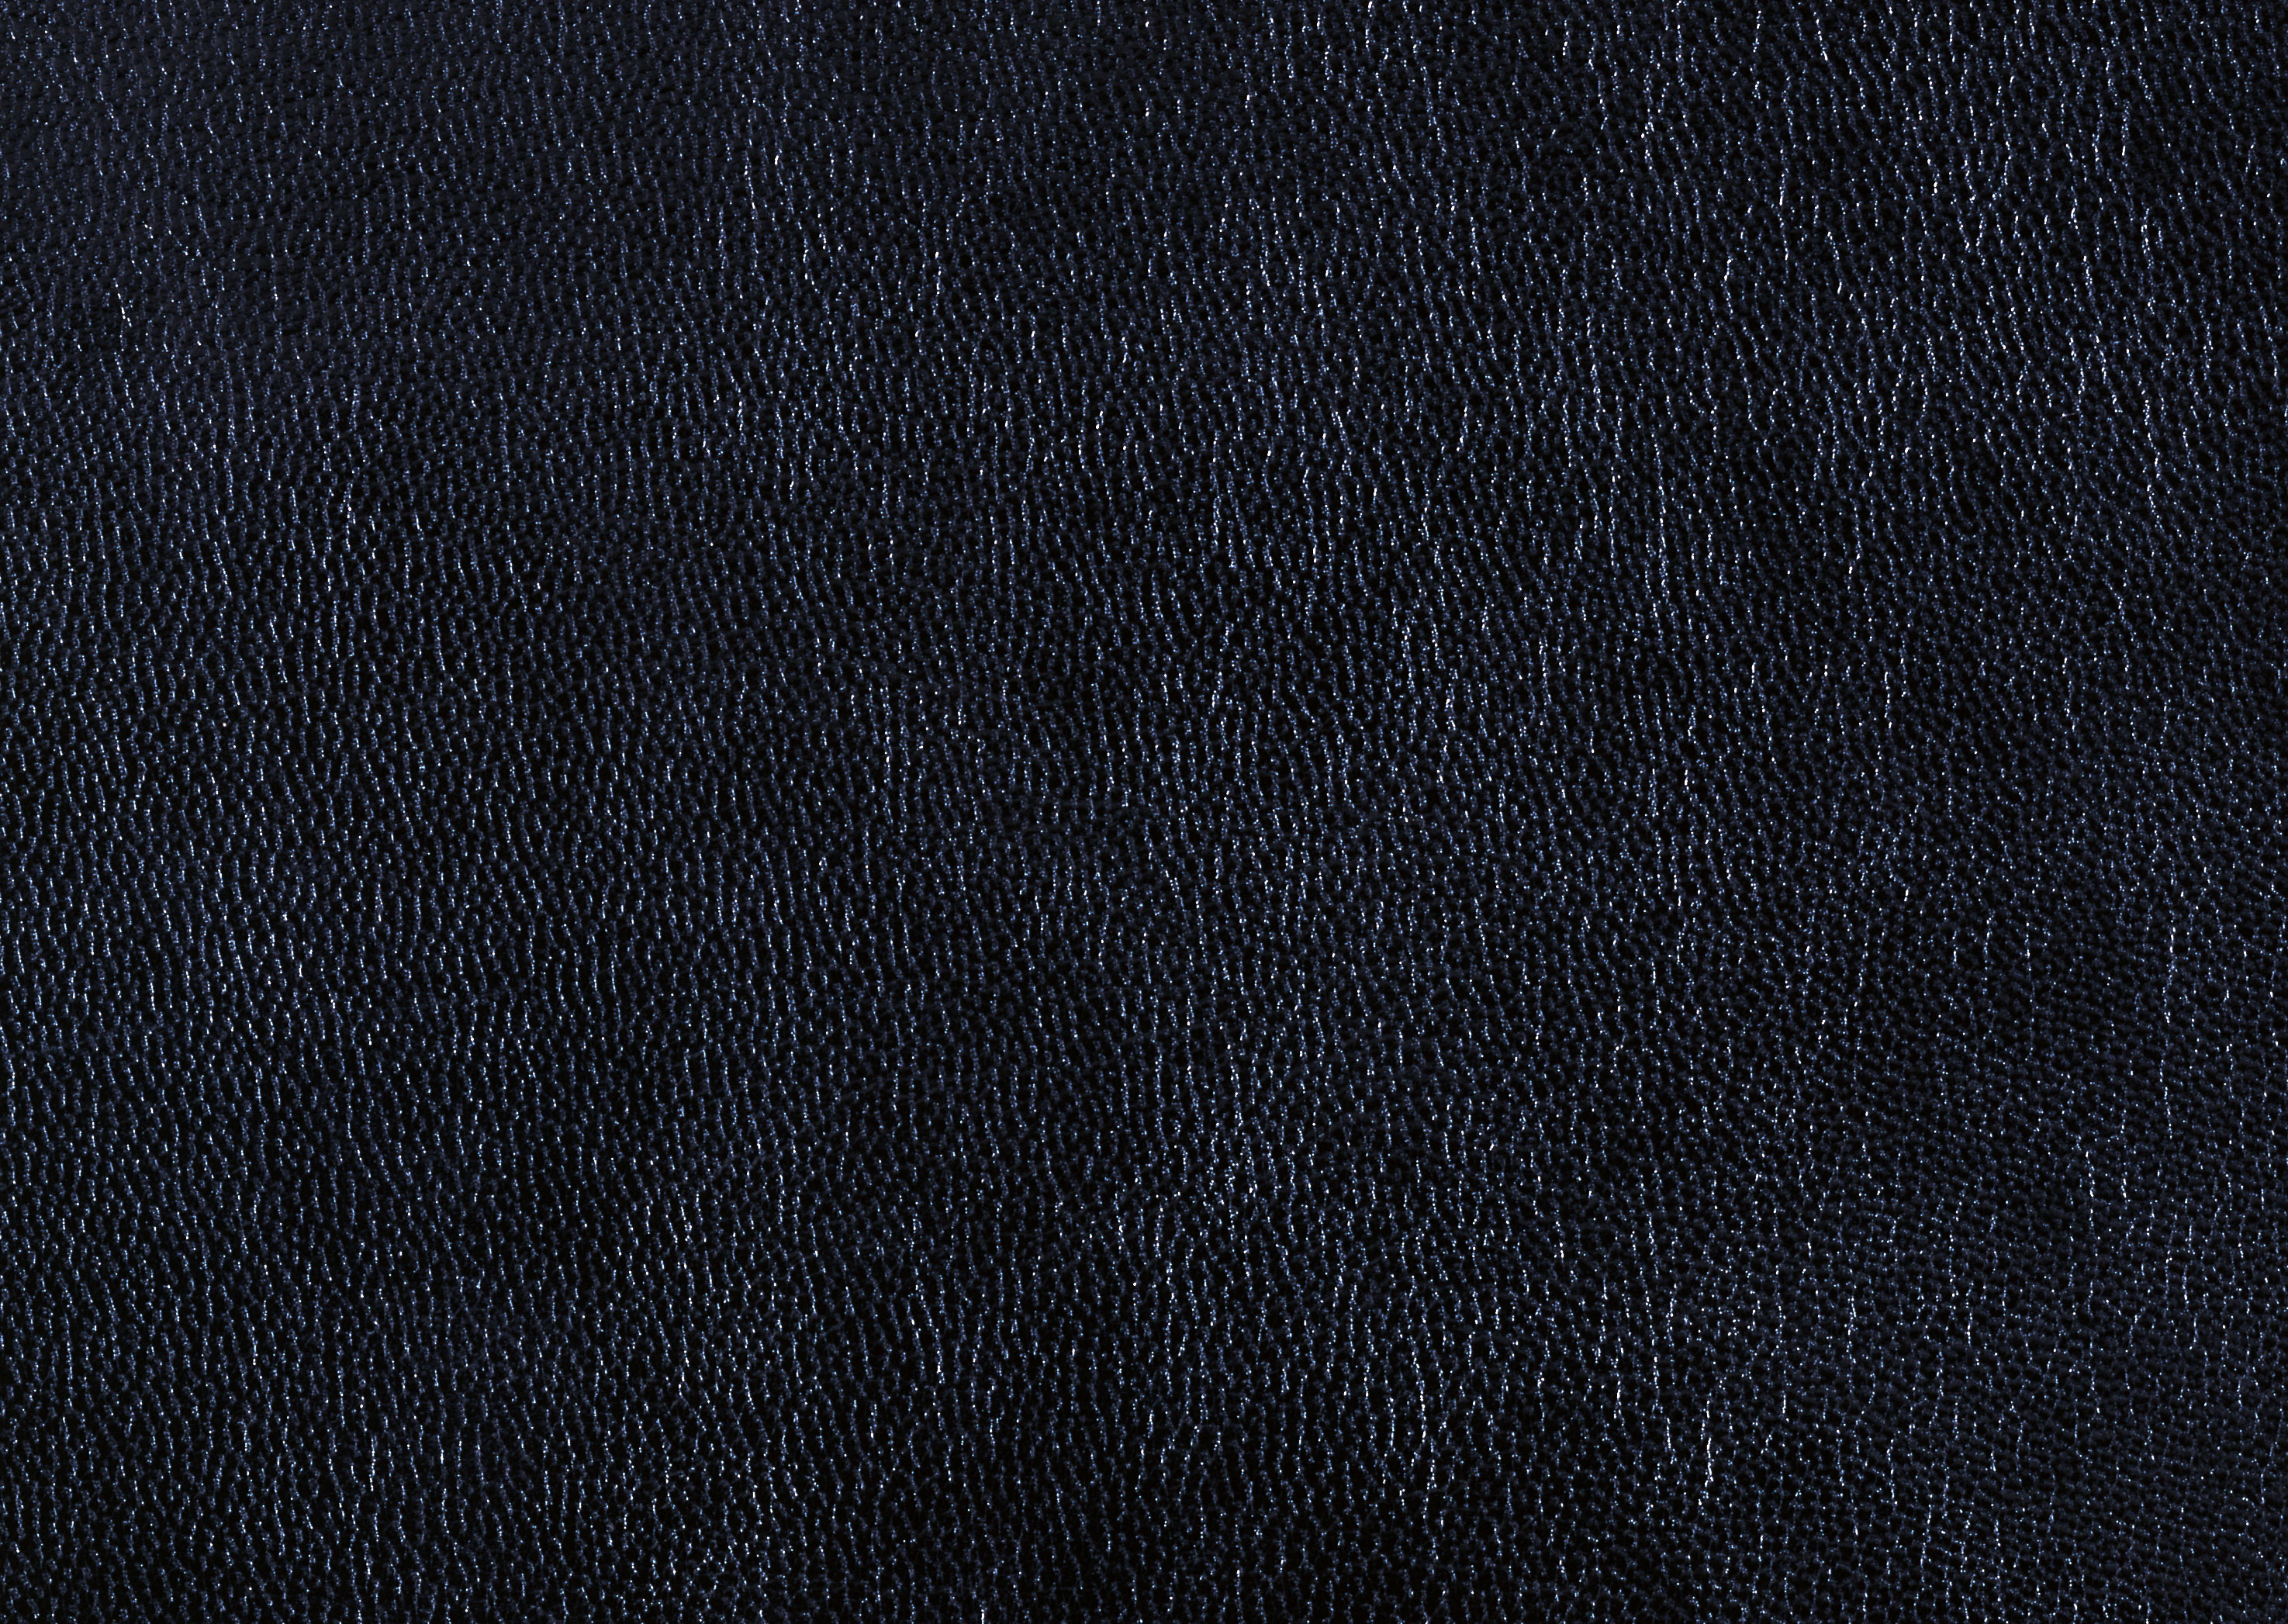 Black leather texture background image free download